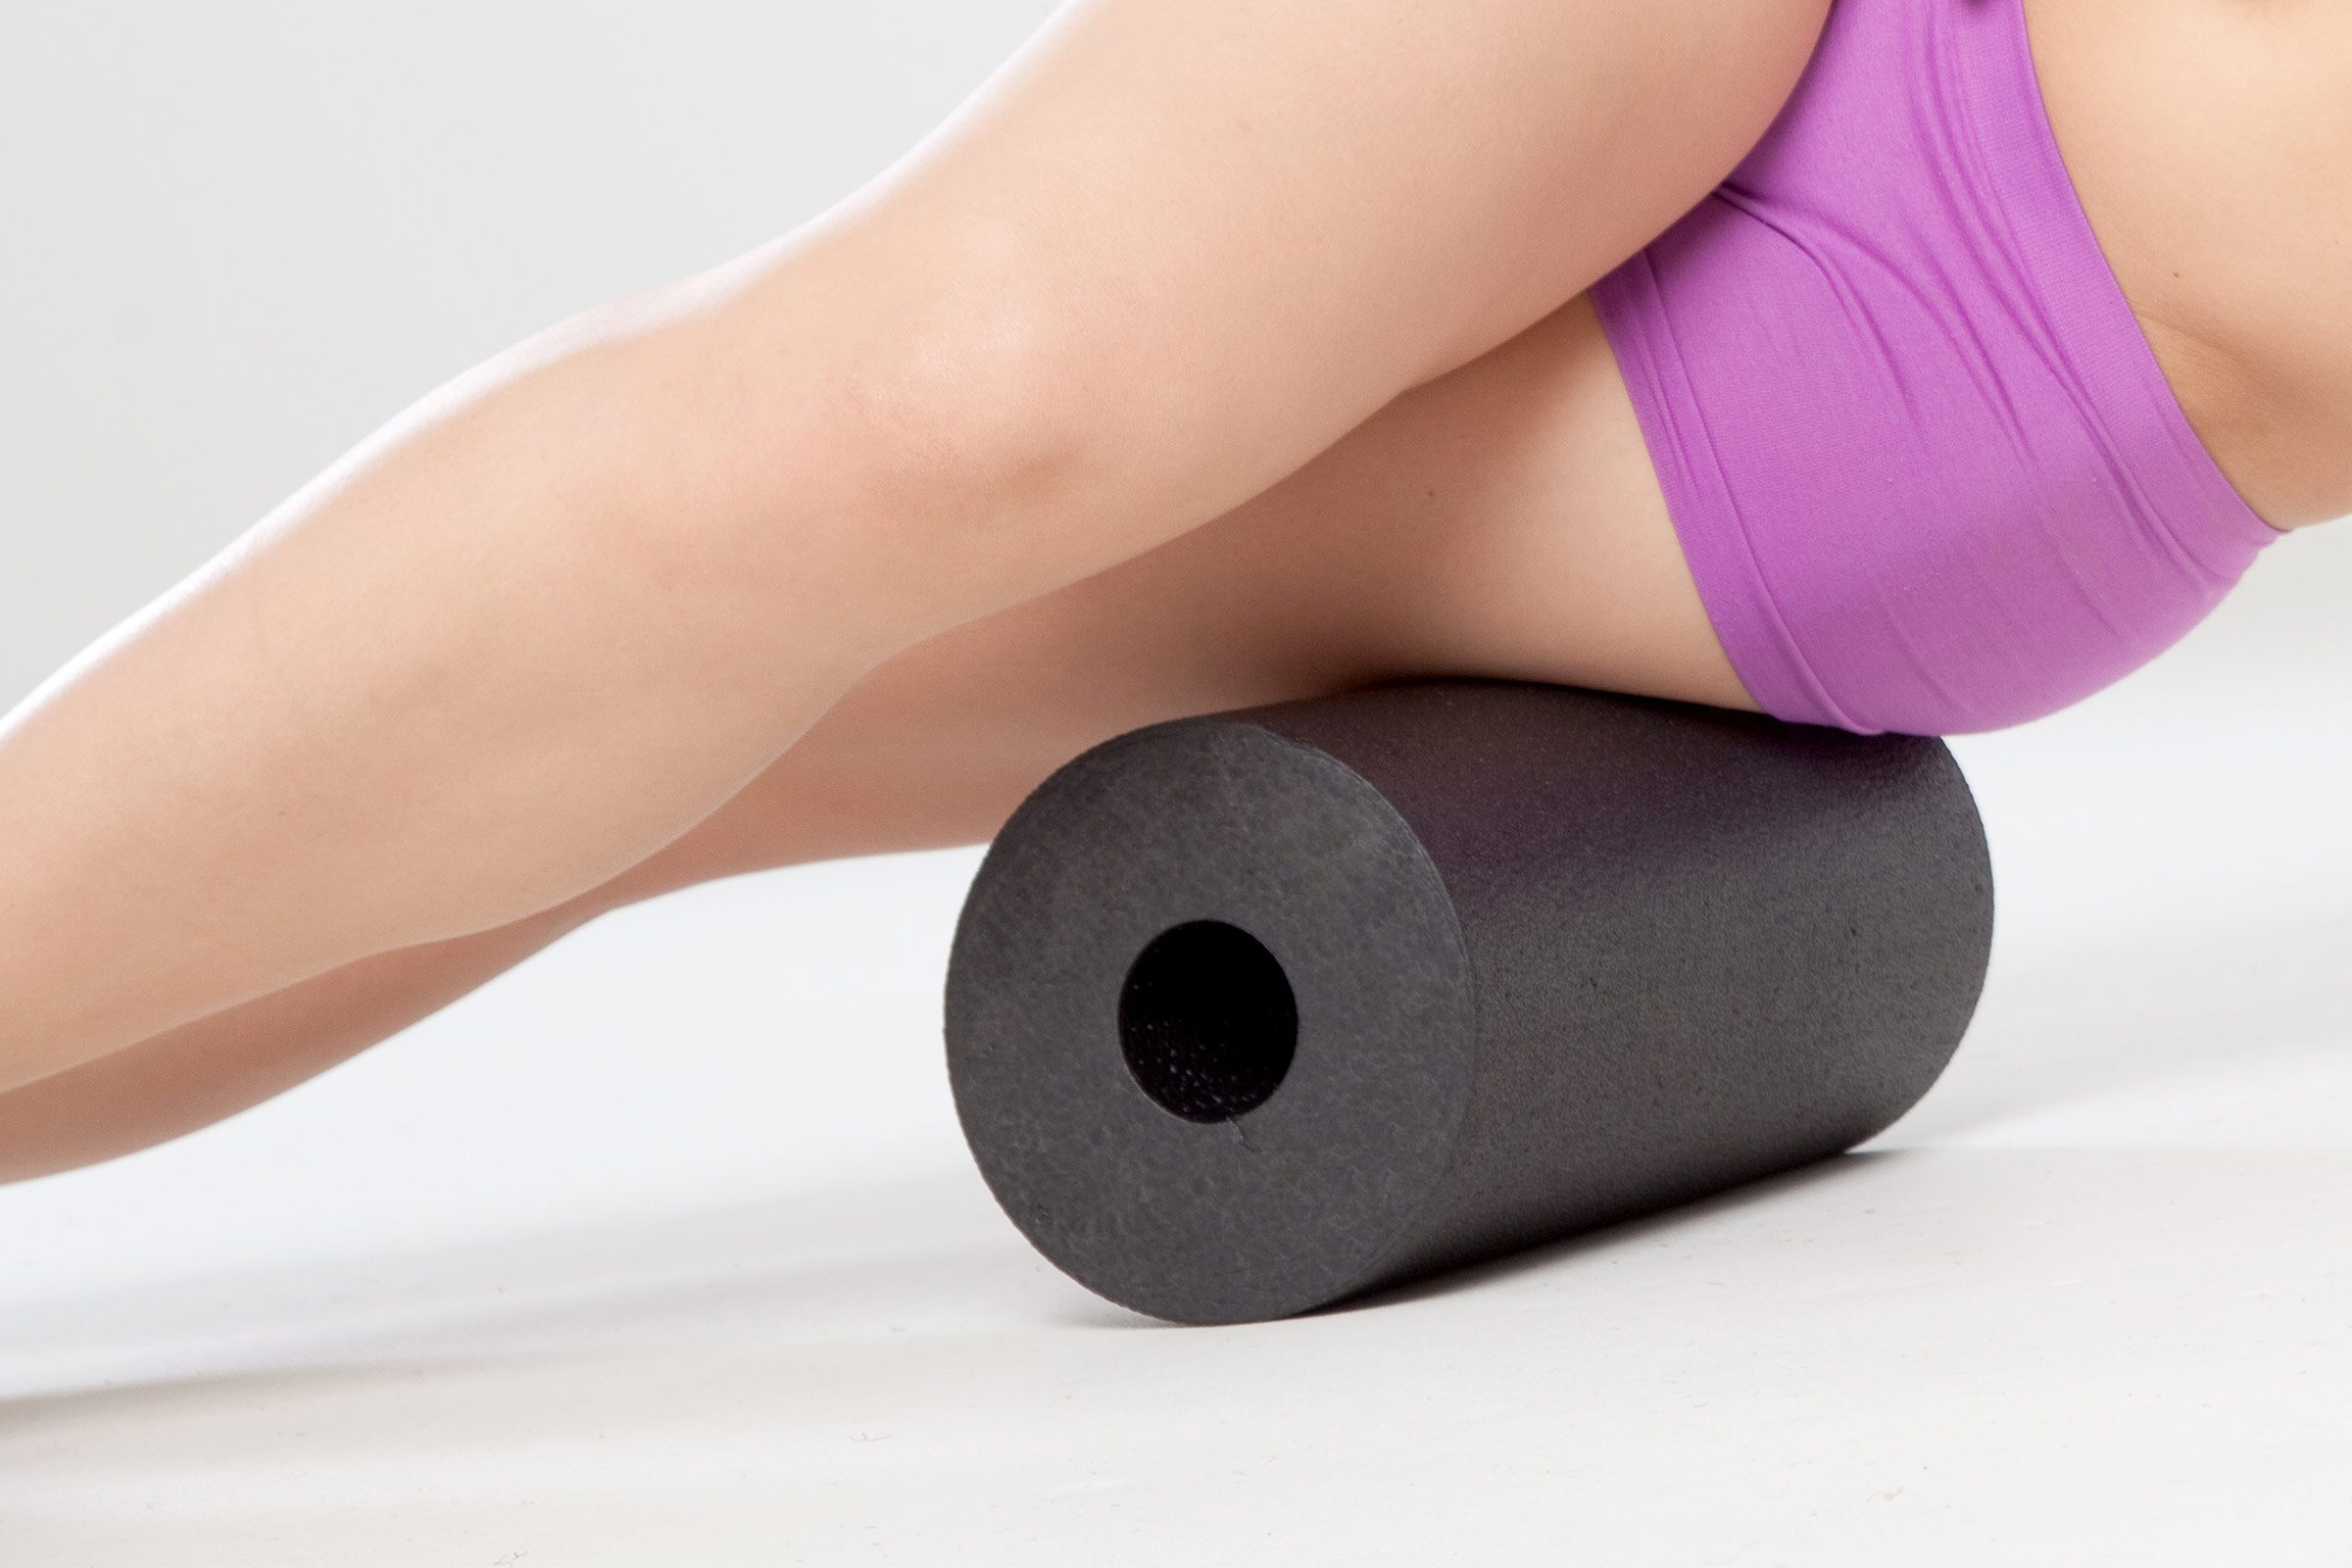 6. Make Friends with a Foam Roller